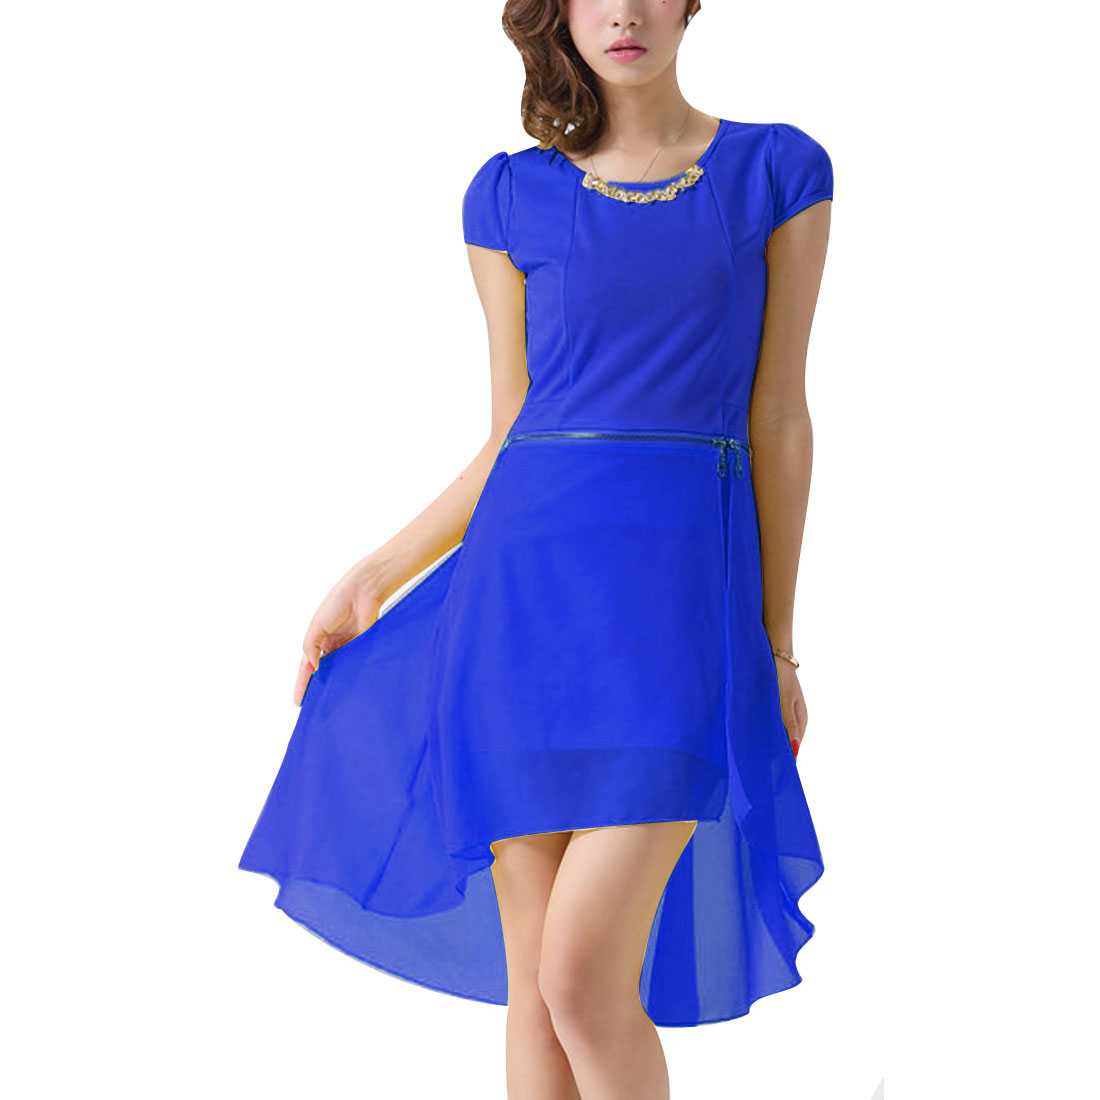 Women Pure Royalblue Round Neck Cap Sleeve Splice Convertible Dress XS